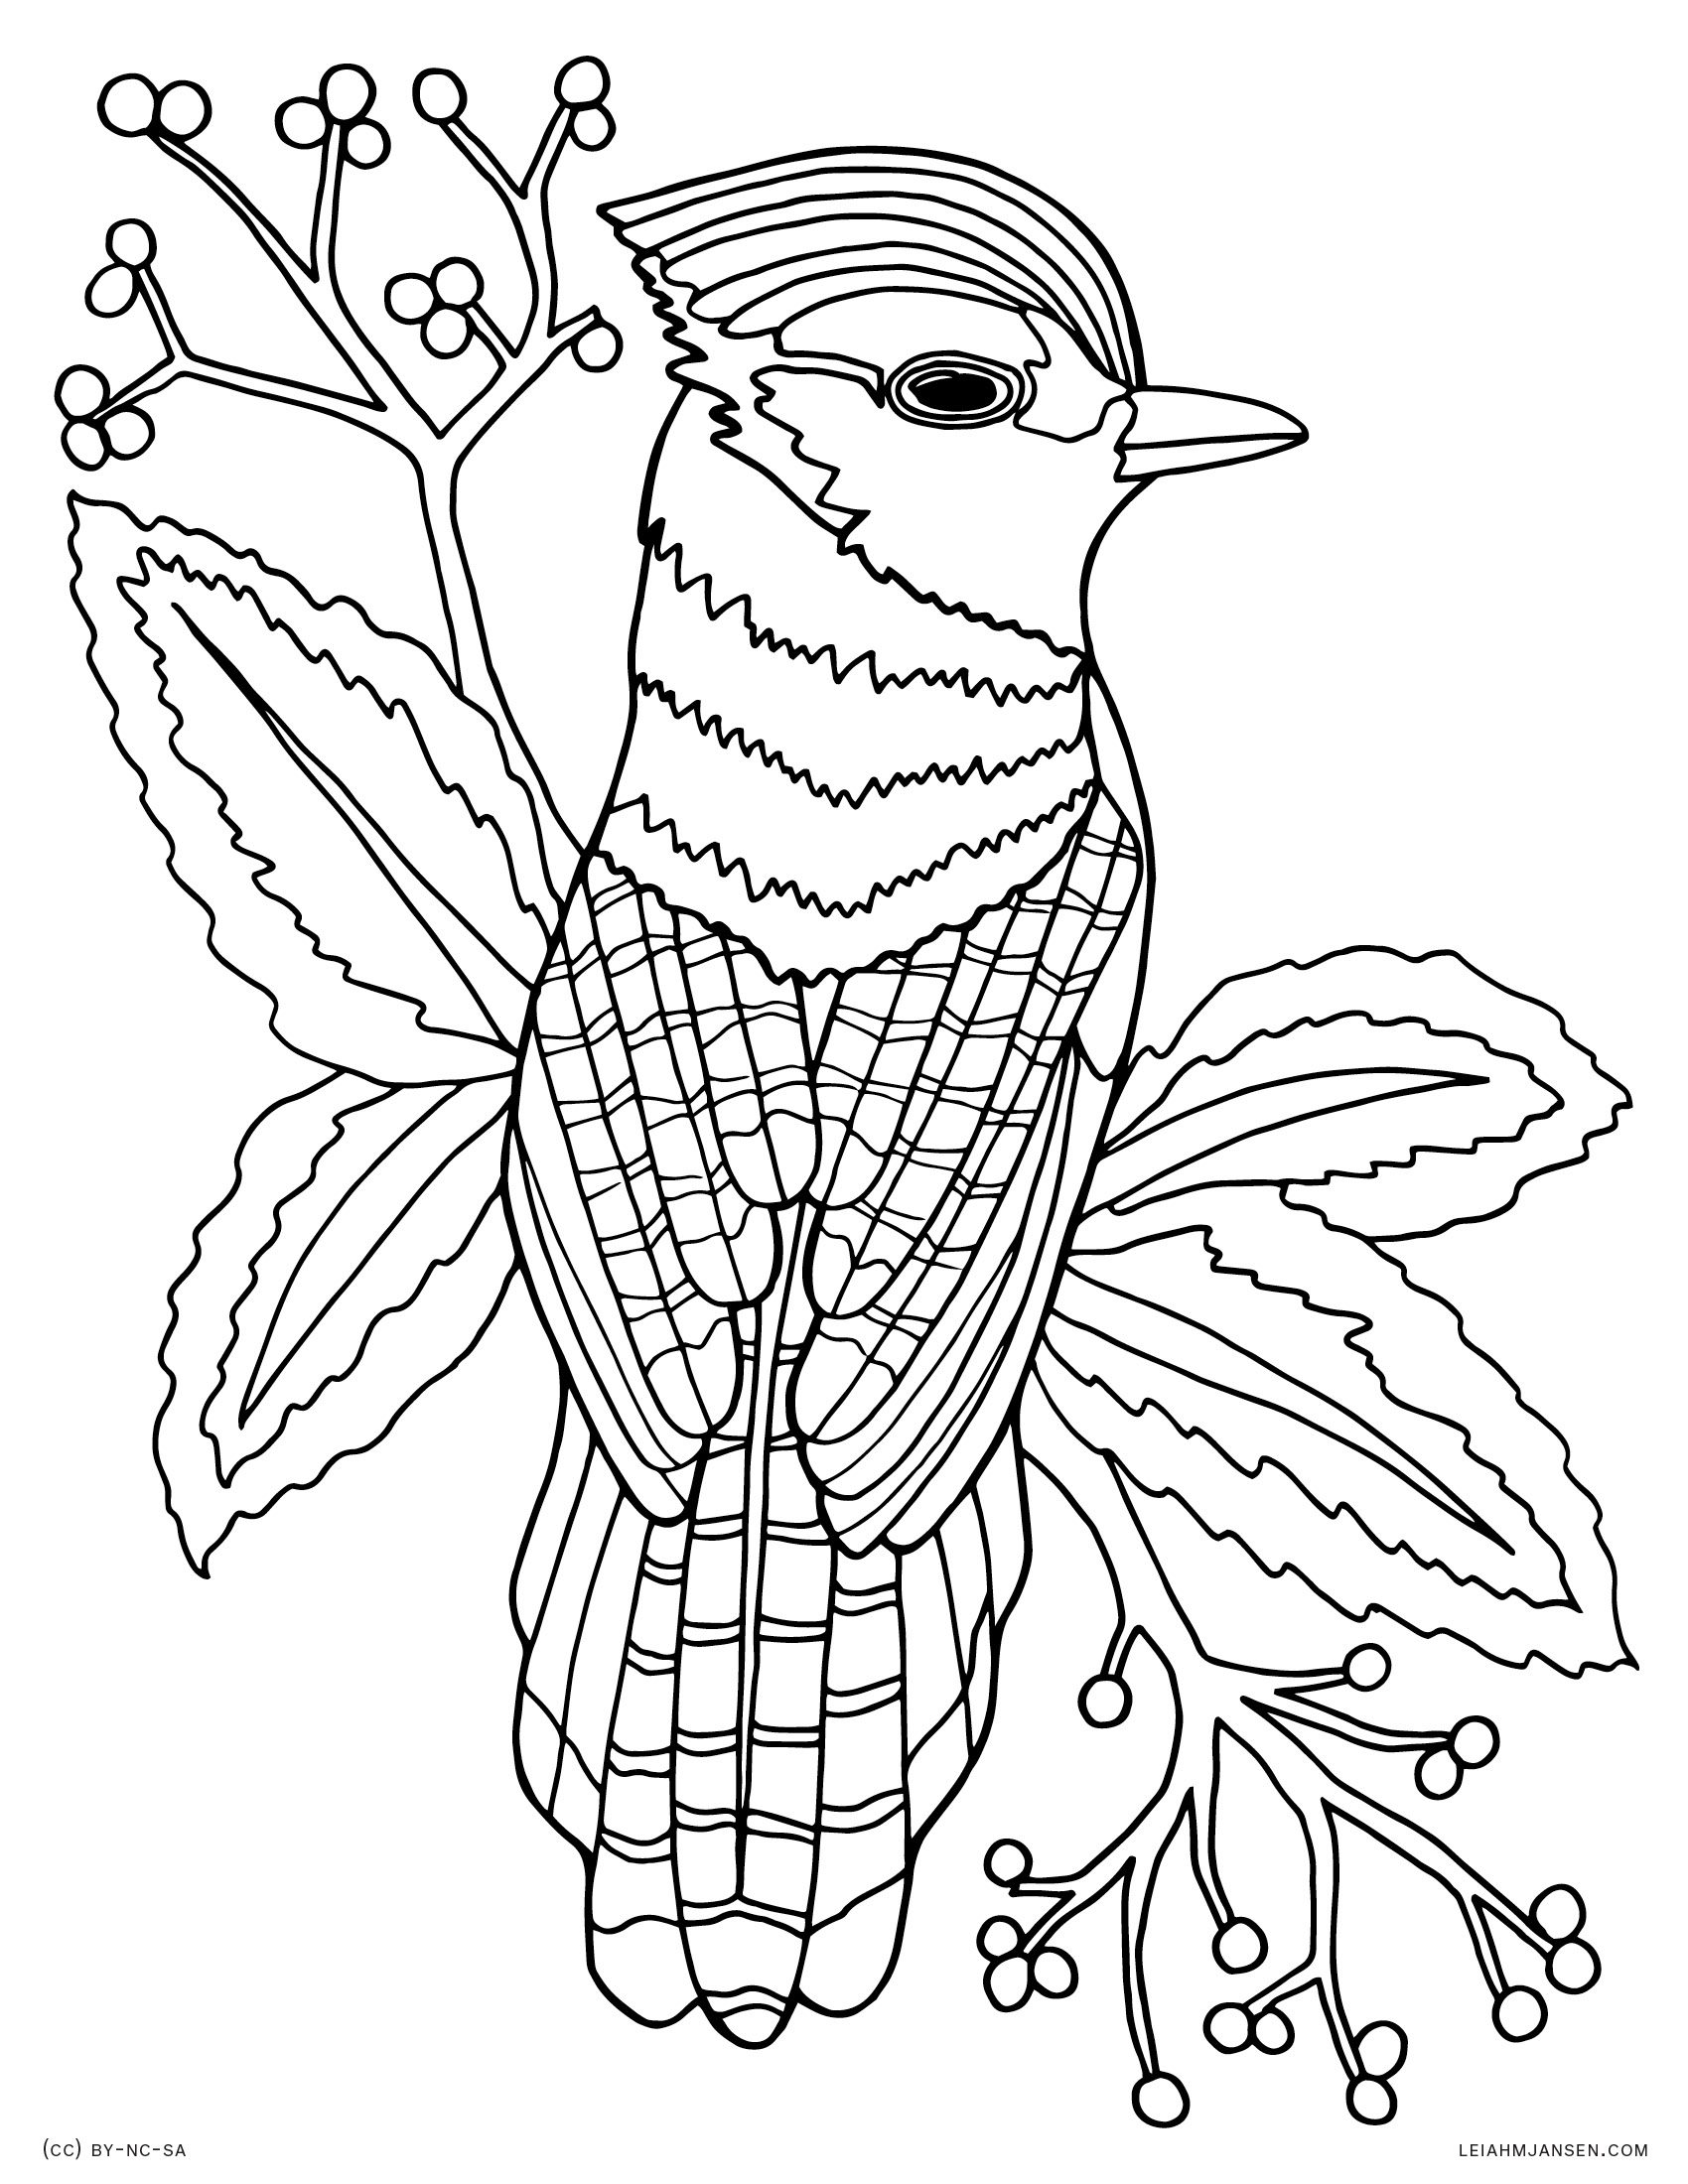 coloring bird printable bird of paradise coloring page at getcoloringscom free bird coloring printable